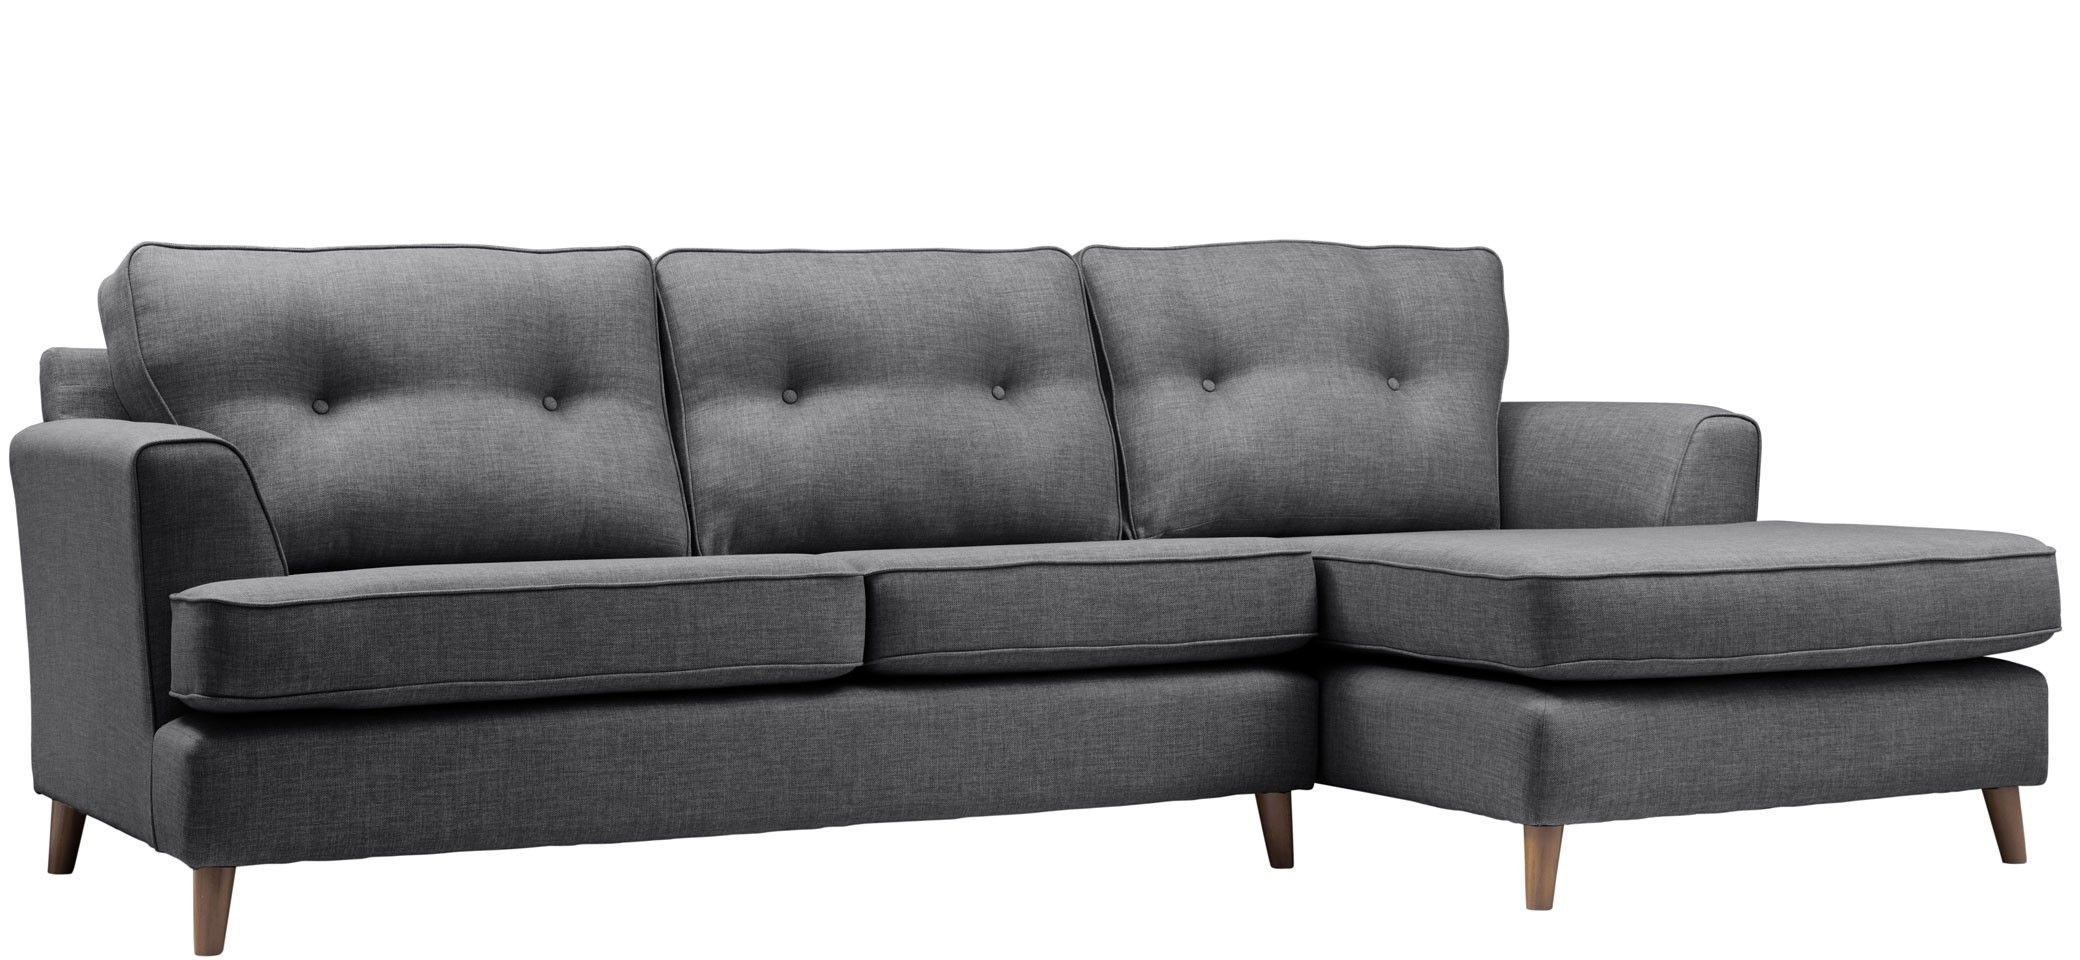 Latest Norfolk Chocolate 3 Piece Sectionals With Raf Chaise With Location Chaise Option (Gallery 20 of 20)